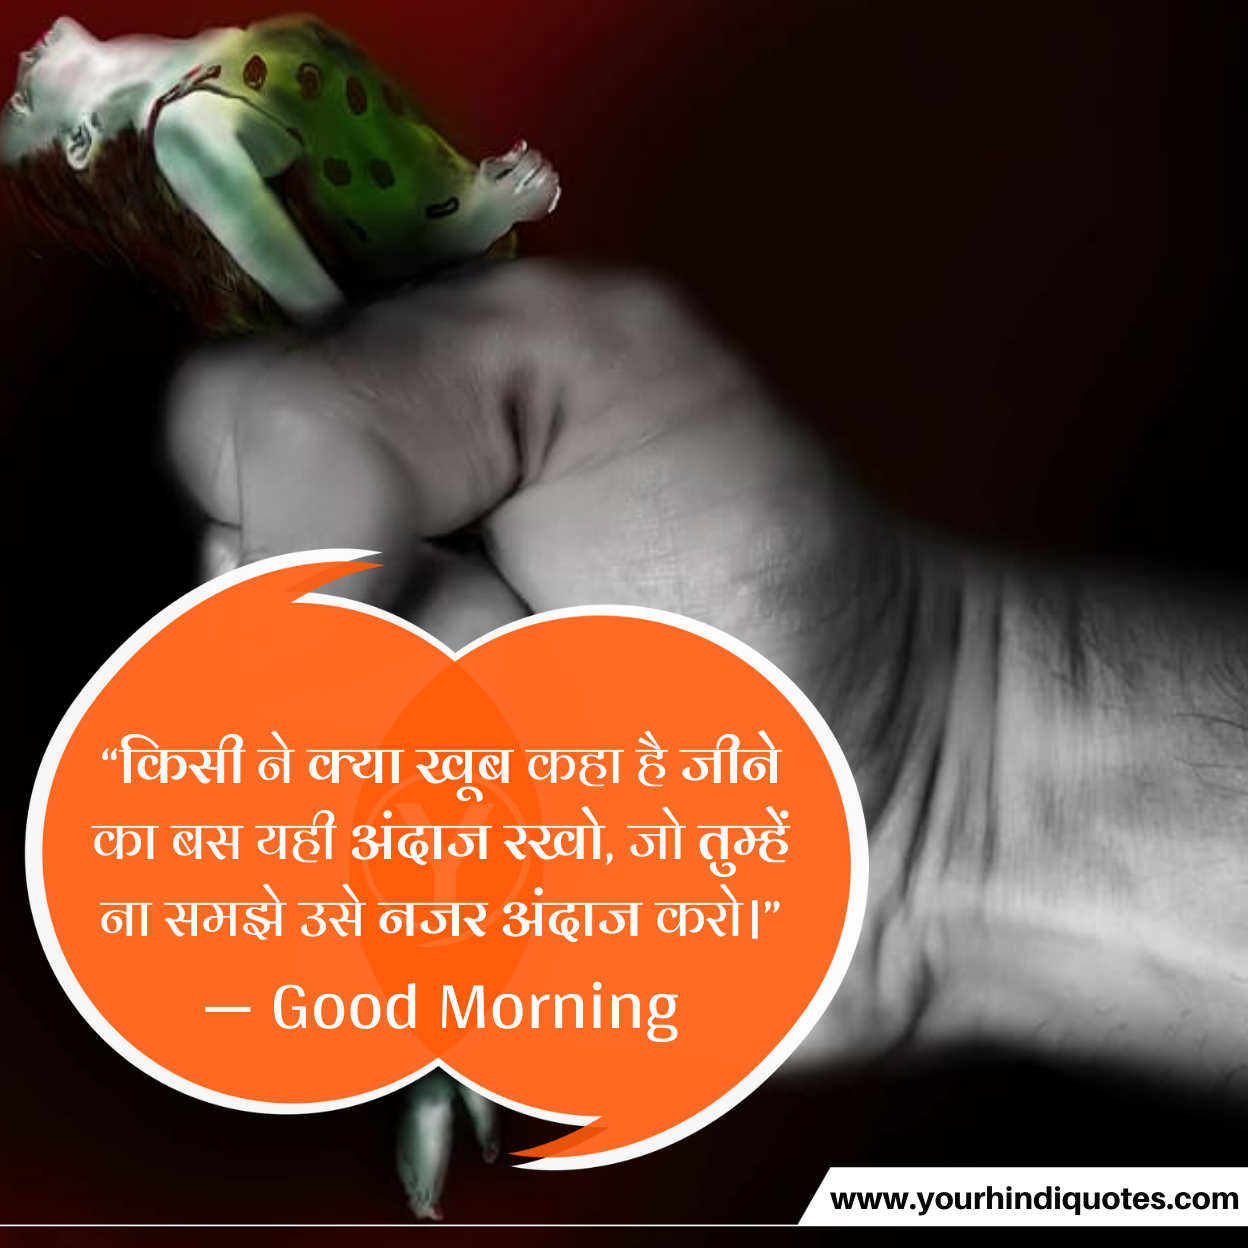 Hindi Good Morning Thoughts Picture